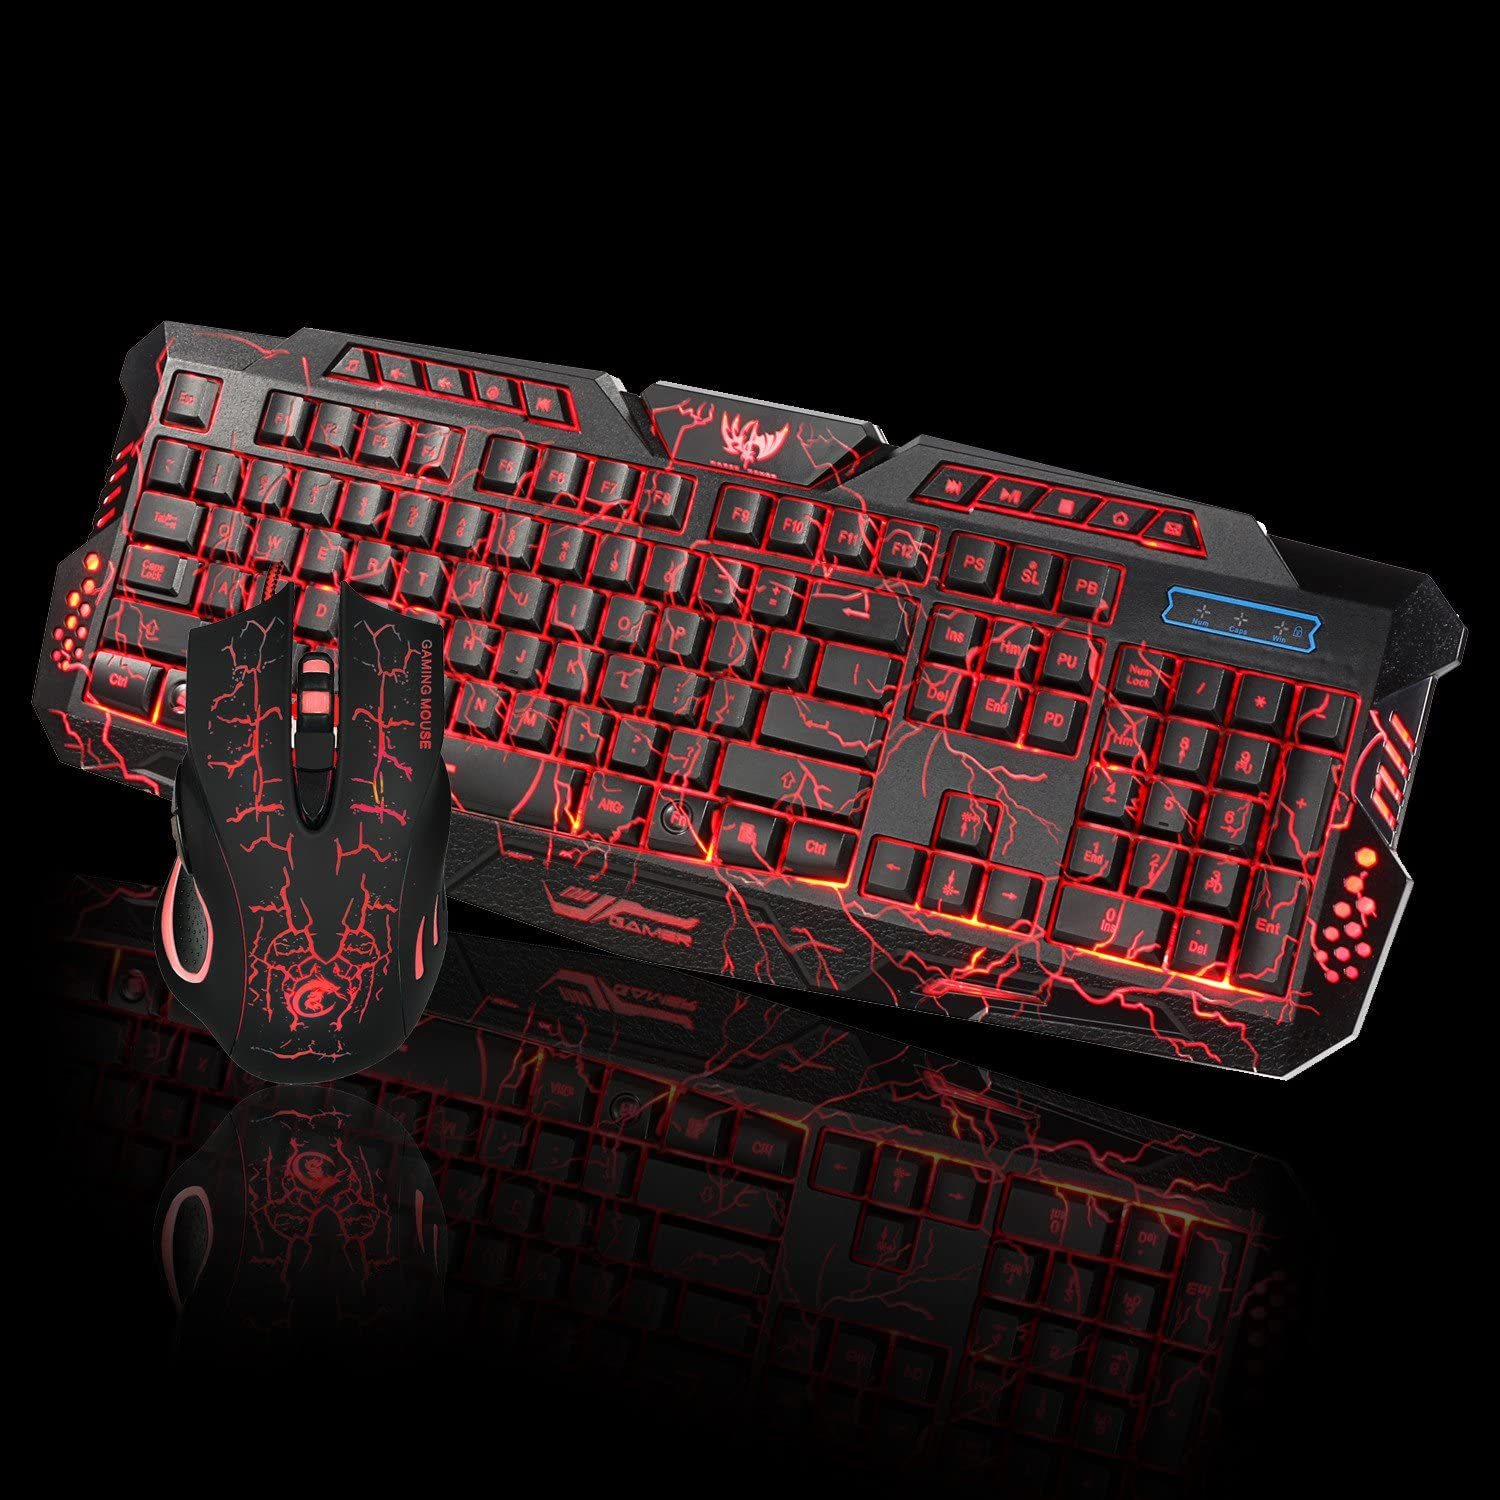 OHQ RatóN LED Gaming Wired 2.4G Keyboard and Mouse Set To Computer ...